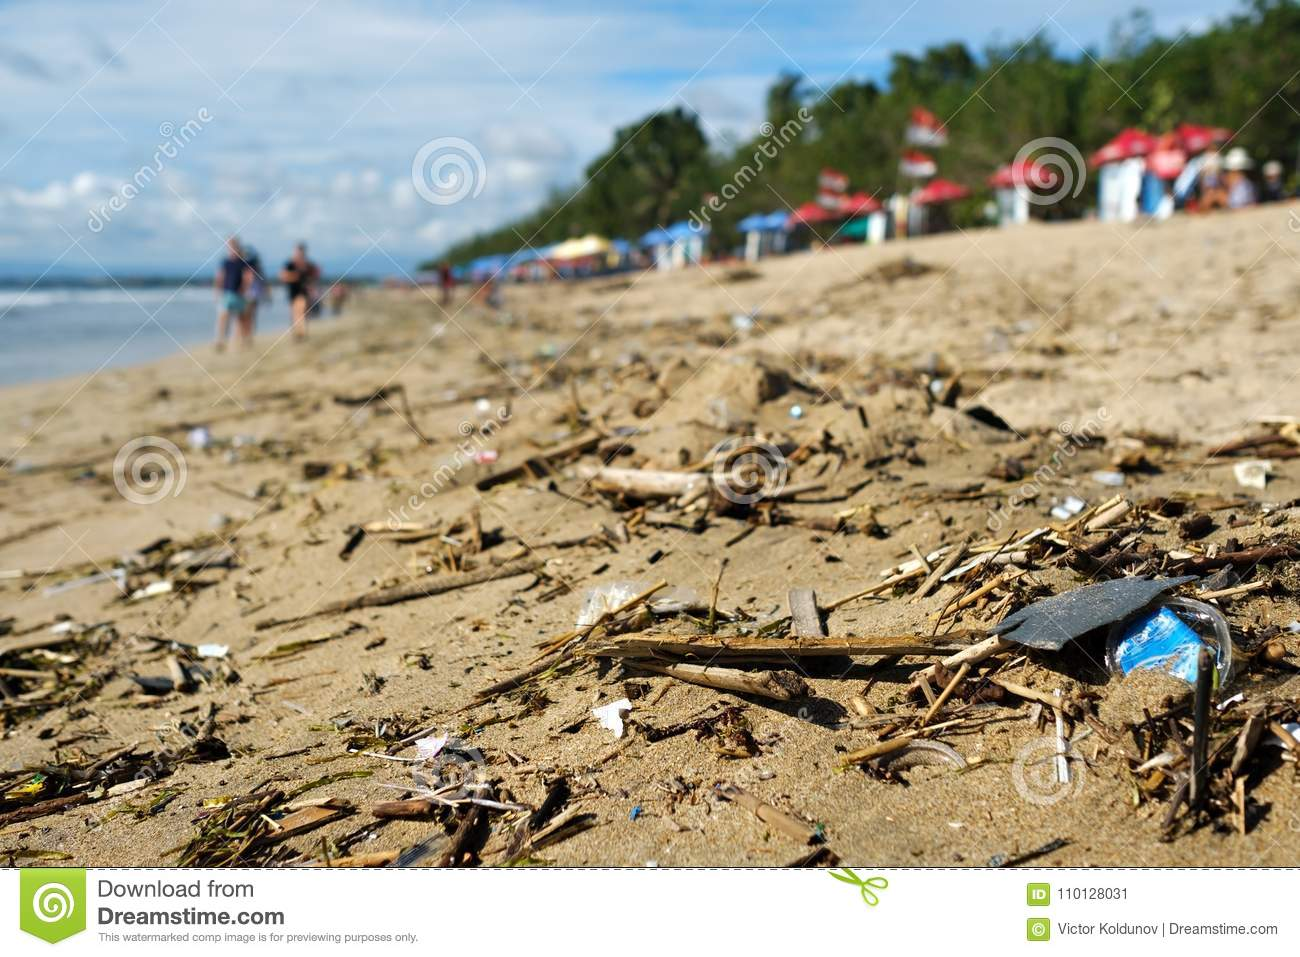 Beach Pollution In Bali Indonesia Stock Image Image Of Disaster